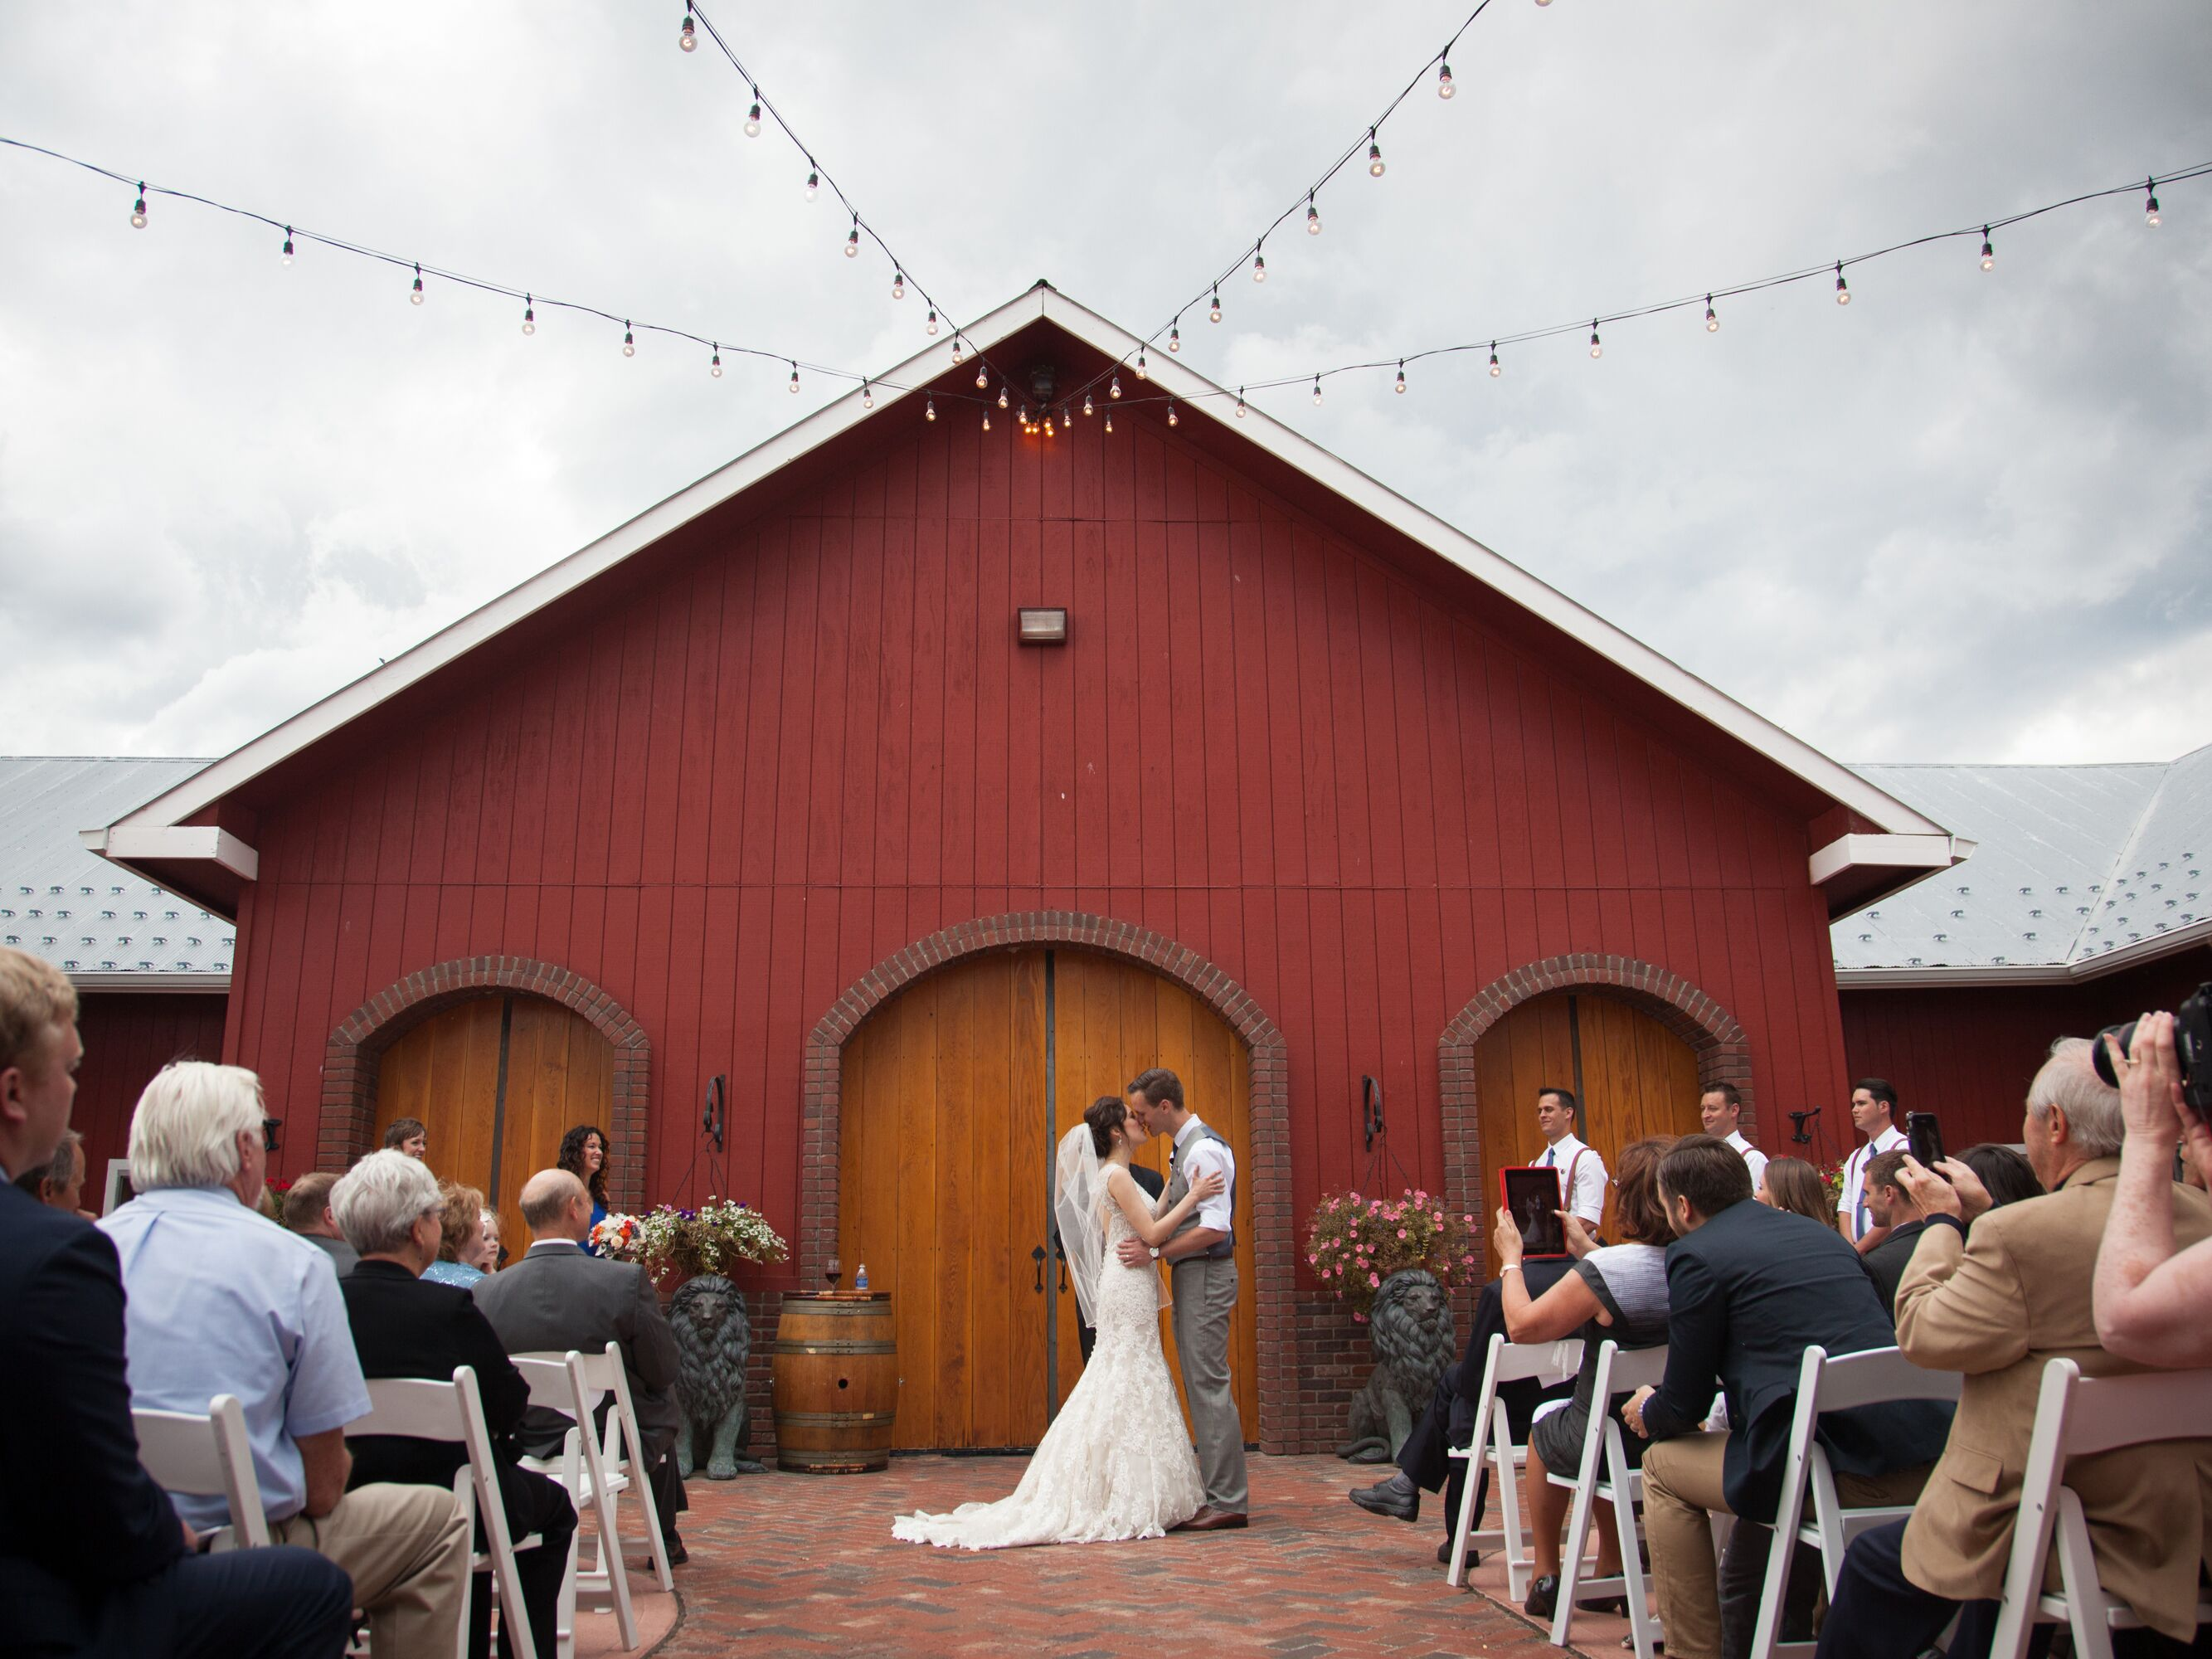 The Most Common Reasons for Filing Wedding Insurance Claims